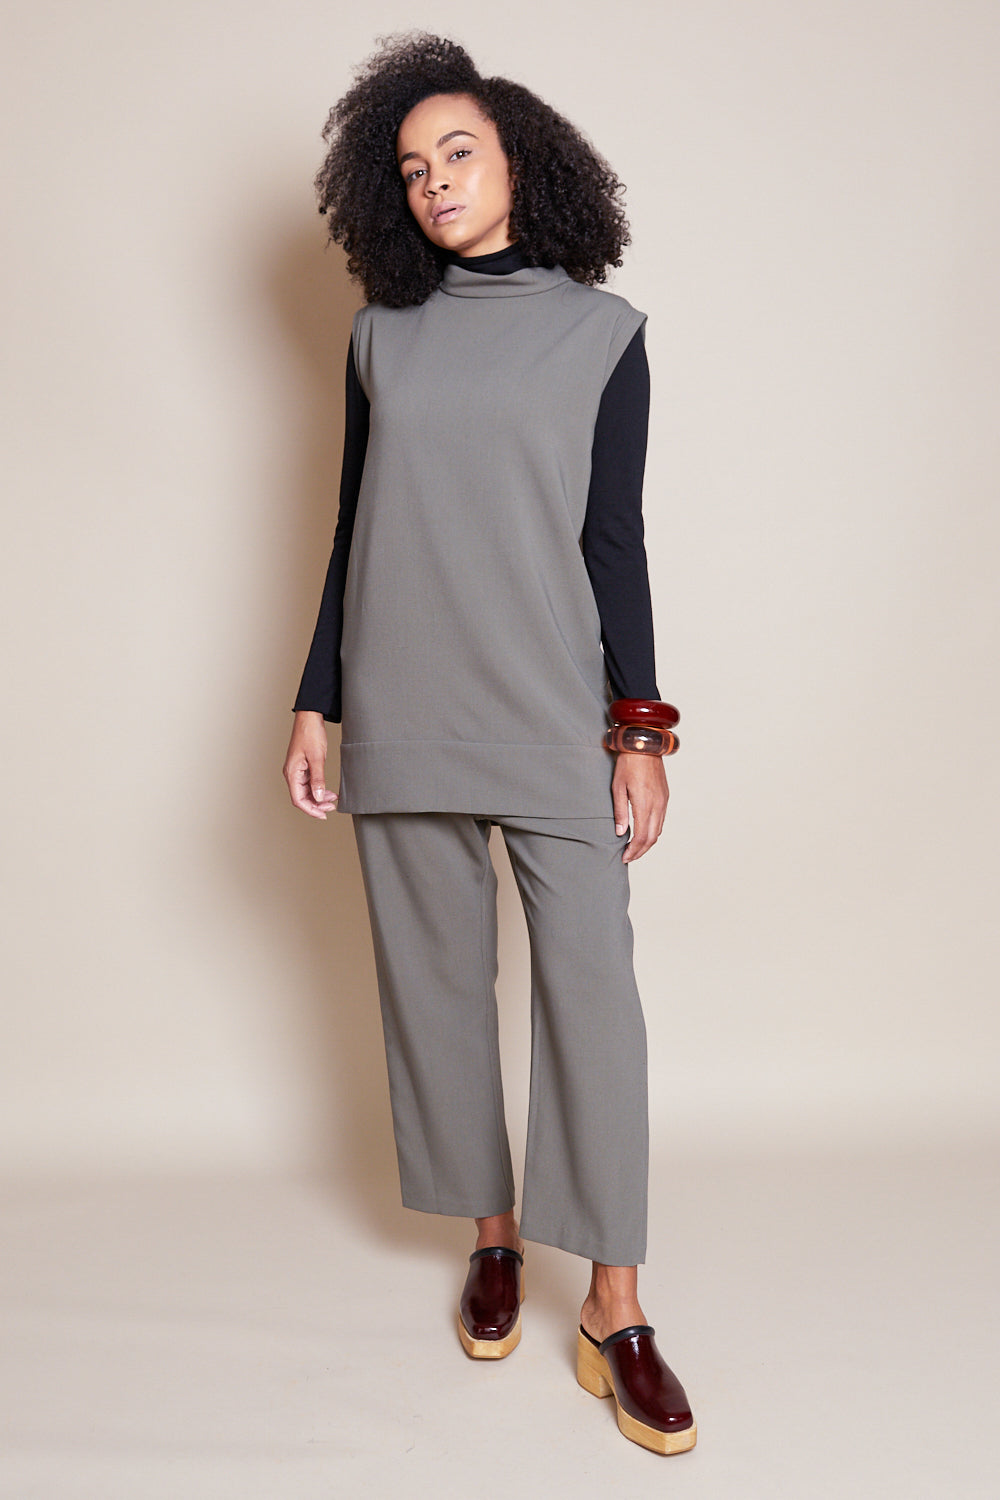 Rachel Comey Ellis Dress in Army - Vert & Vogue